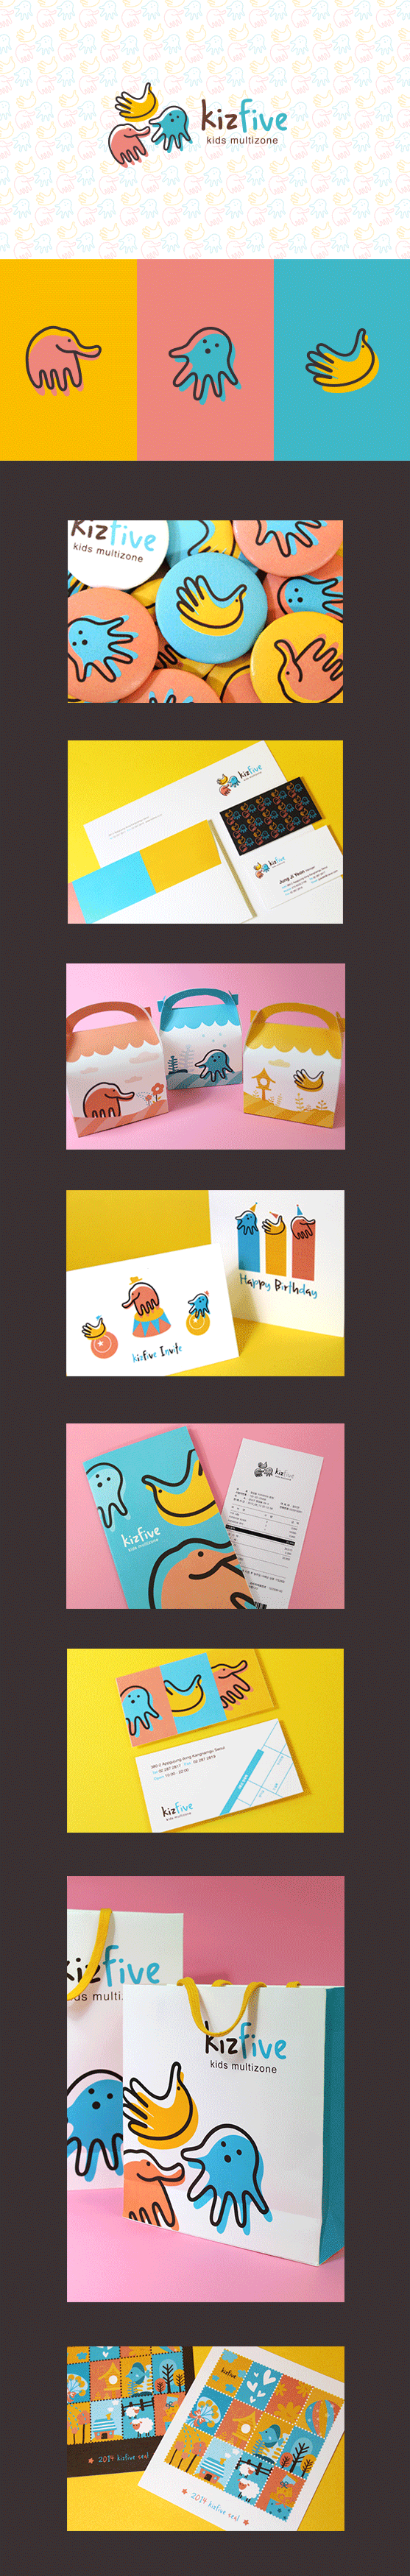 via 지연 정 on Behance. This project is submitted to the University of assignments Kids Cafe branding design project. Packaging smile file : ) 2015 top team packaging pin.